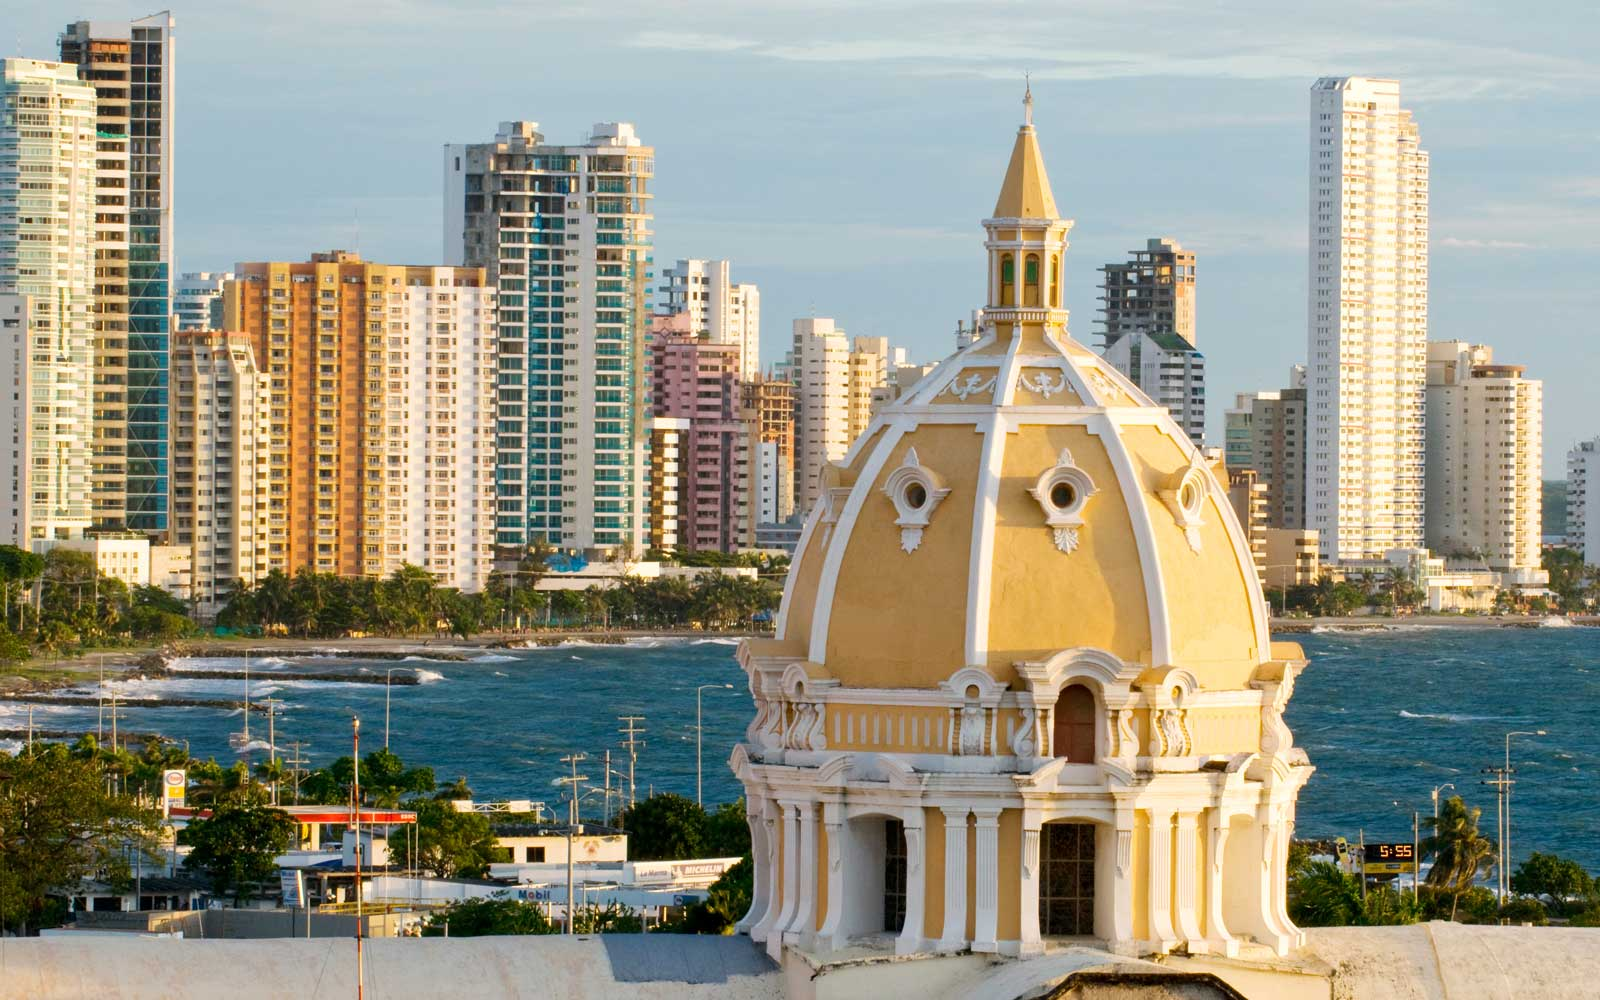 Bocagrande and Old Town Cartagena Colombia